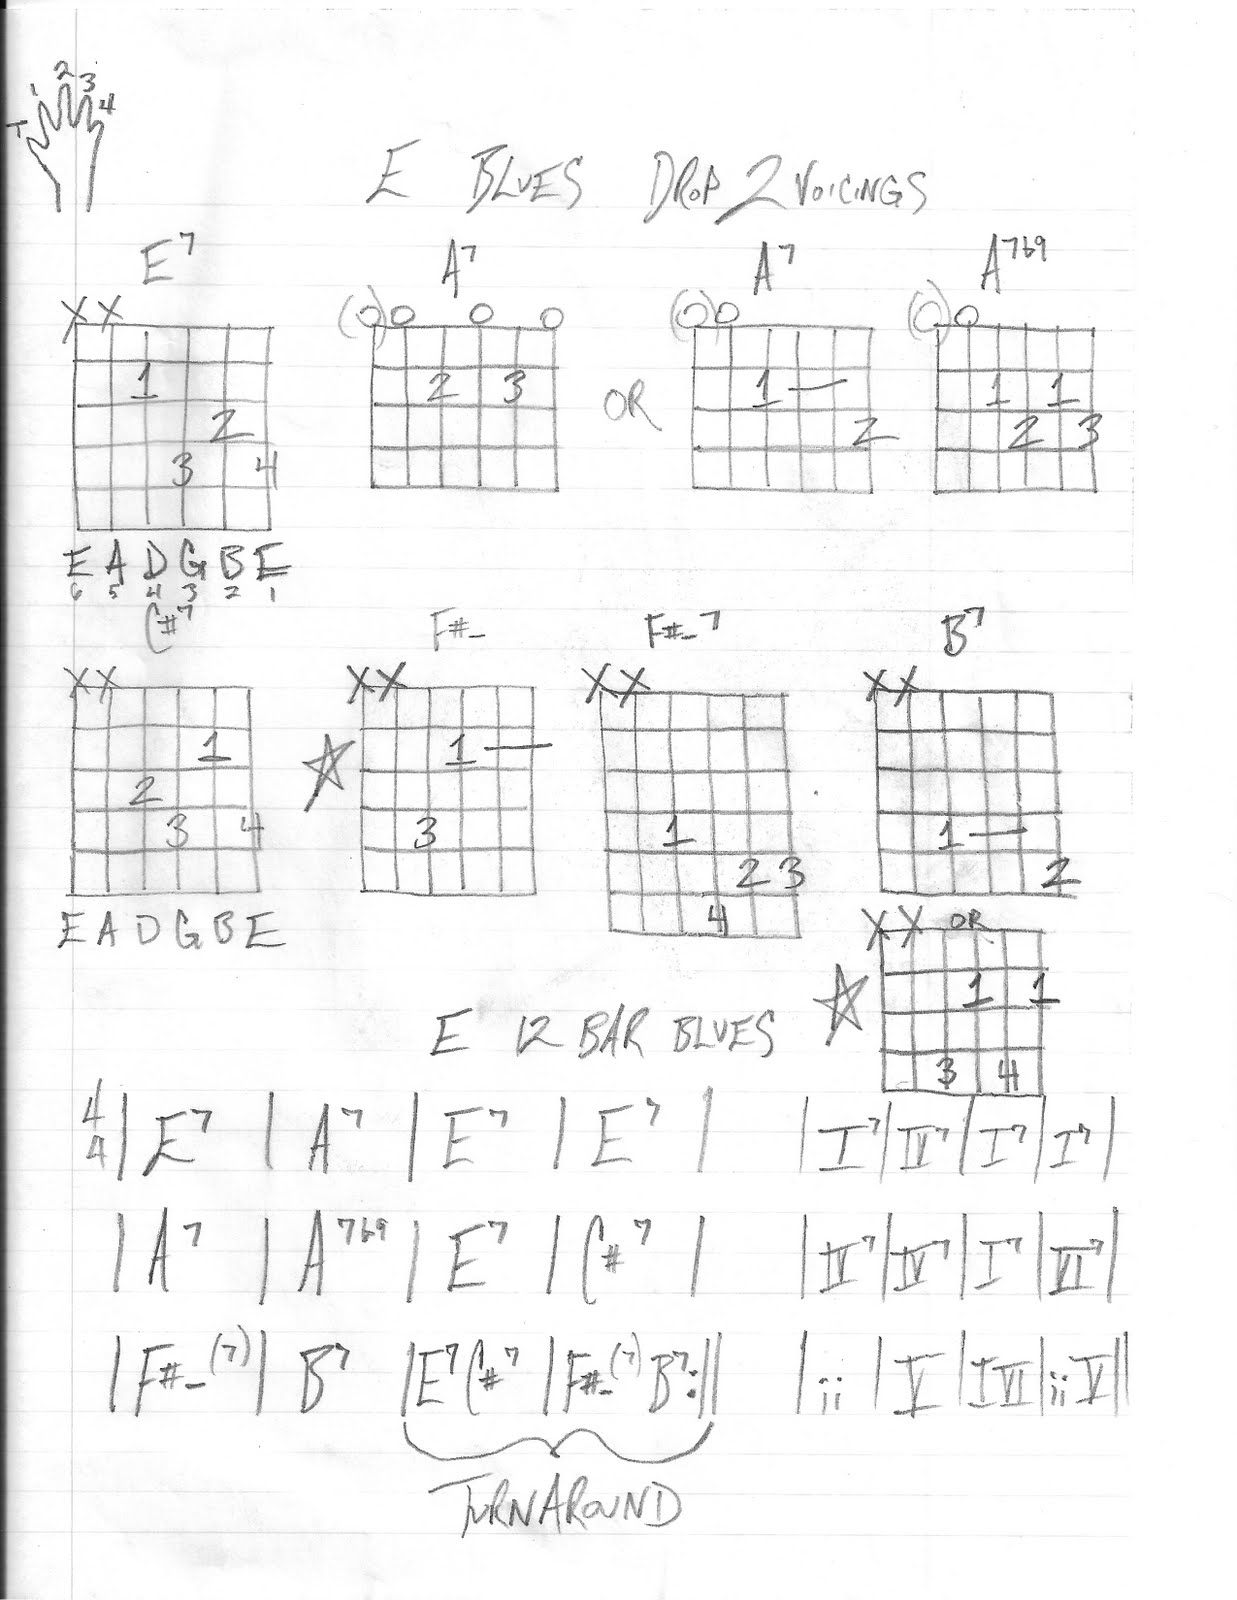 eric stefani music blog june 2011 G Add 9 Guitar Chord for guitar e is the open chord starting at the end of the neck mike hayes show be the very mon 12 bar blues the type of chords he wrote down for